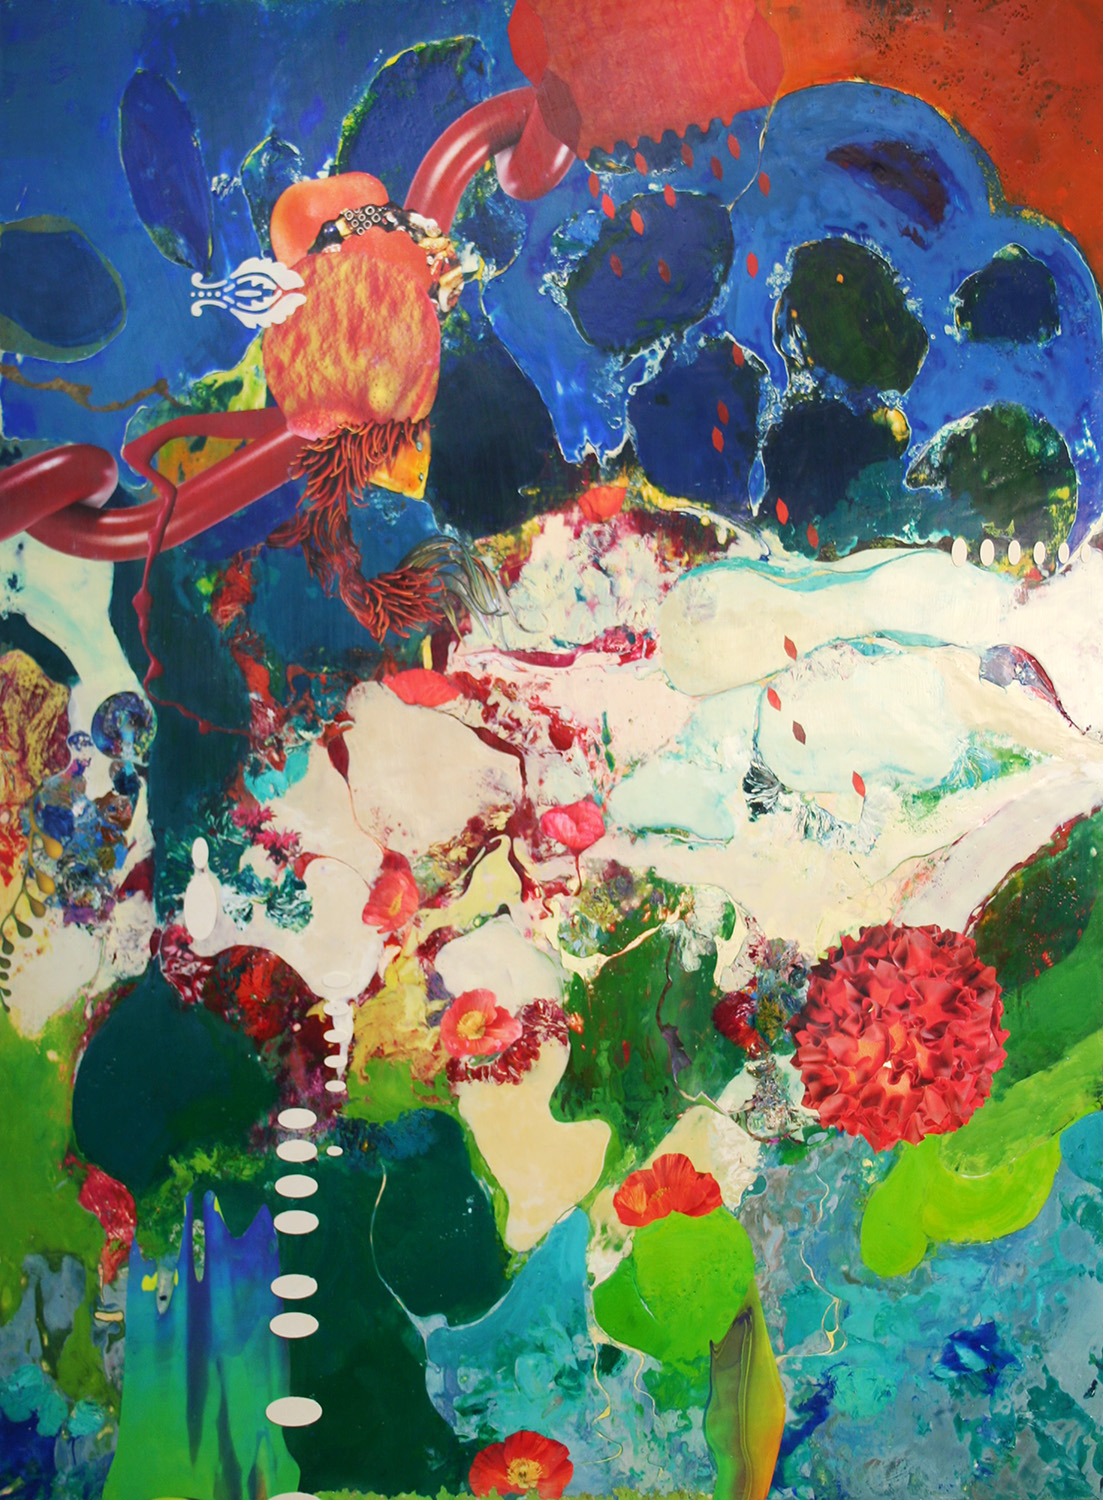 *SOLD* Stifling Heat & Heartbreak, 48x36x1.5